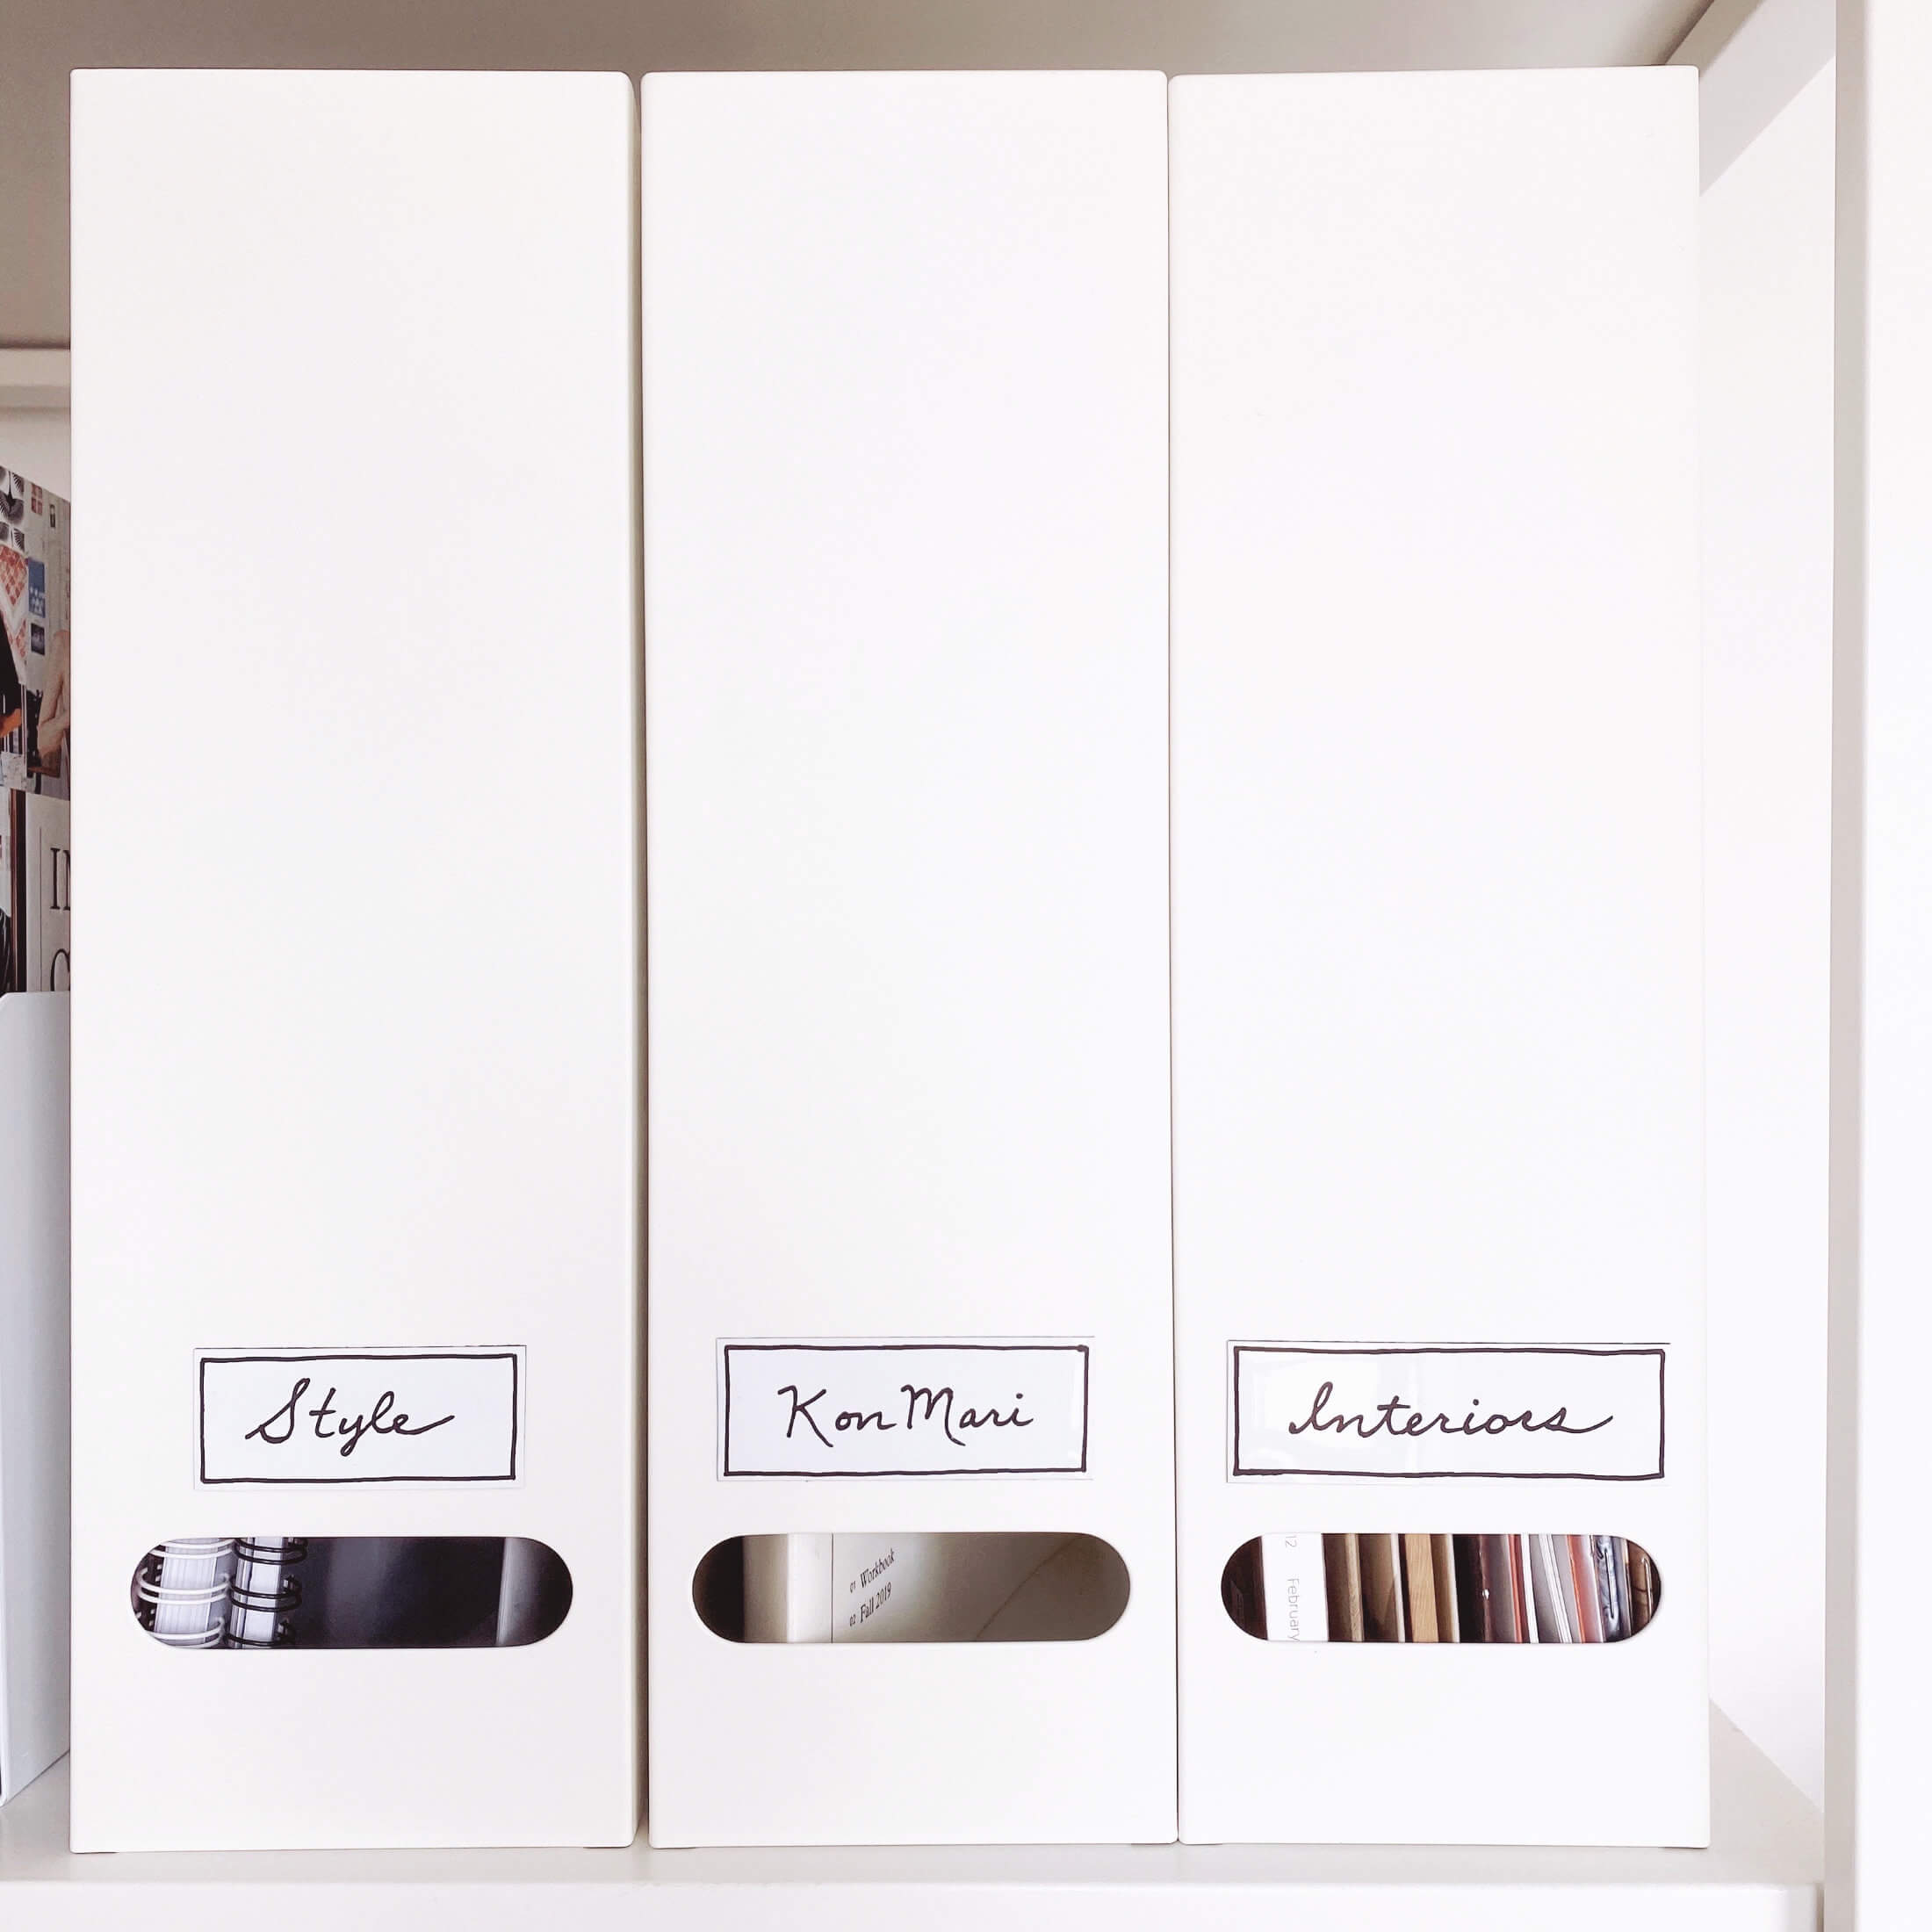 KonMari Tidying - Category Three: Papers. Neat White Metal Filing Boxes On Shelves, Labelled: Style, KonMari & Interiors.